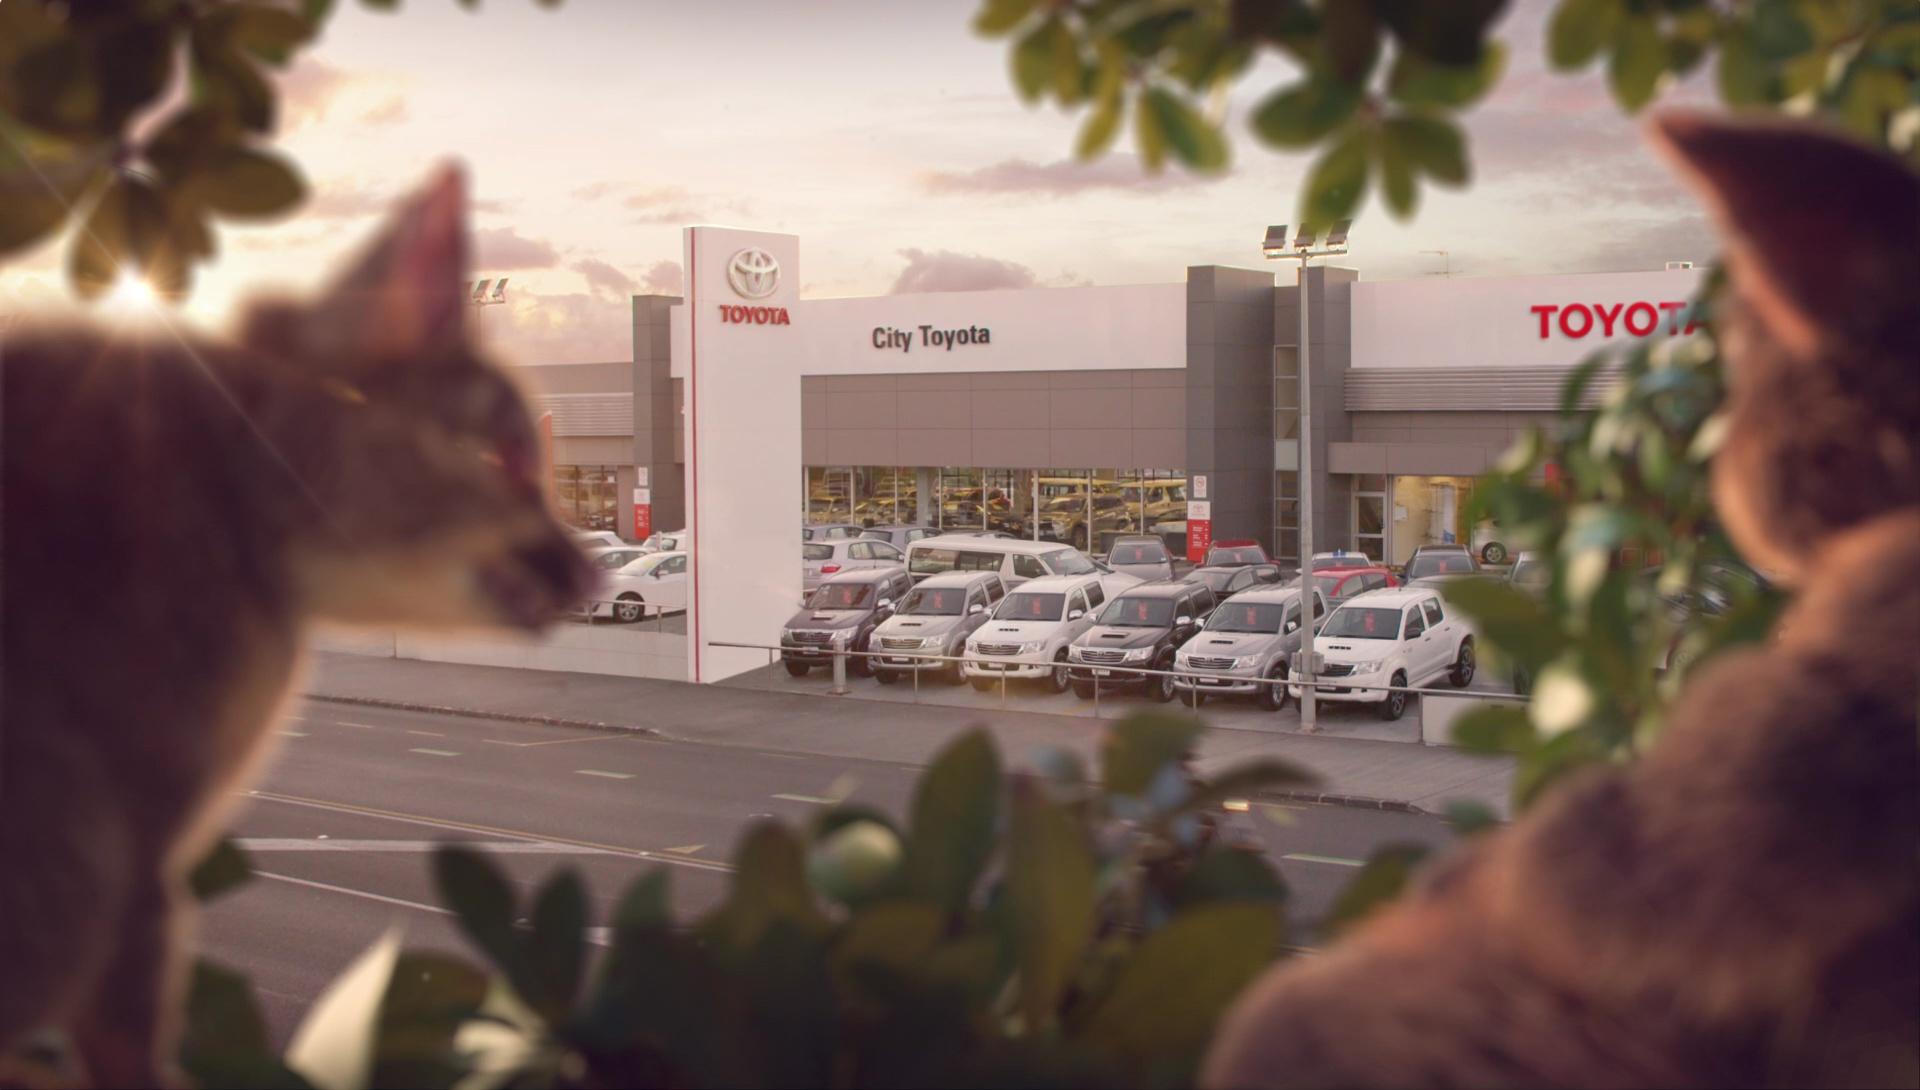 Toyota Television Commercial